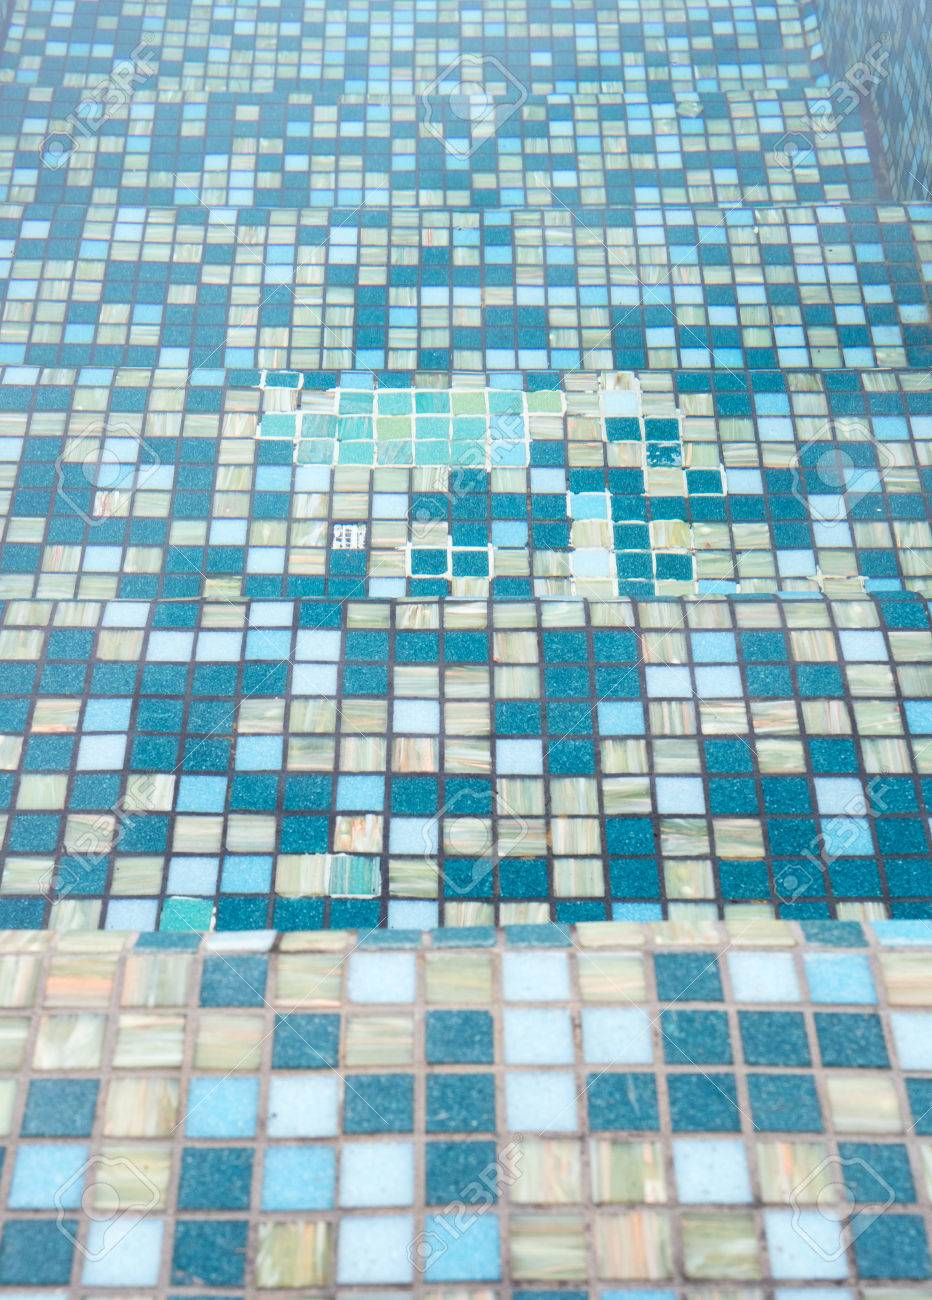 Floor Tiles, Underwater Background Stock Photo, Picture And Royalty ...